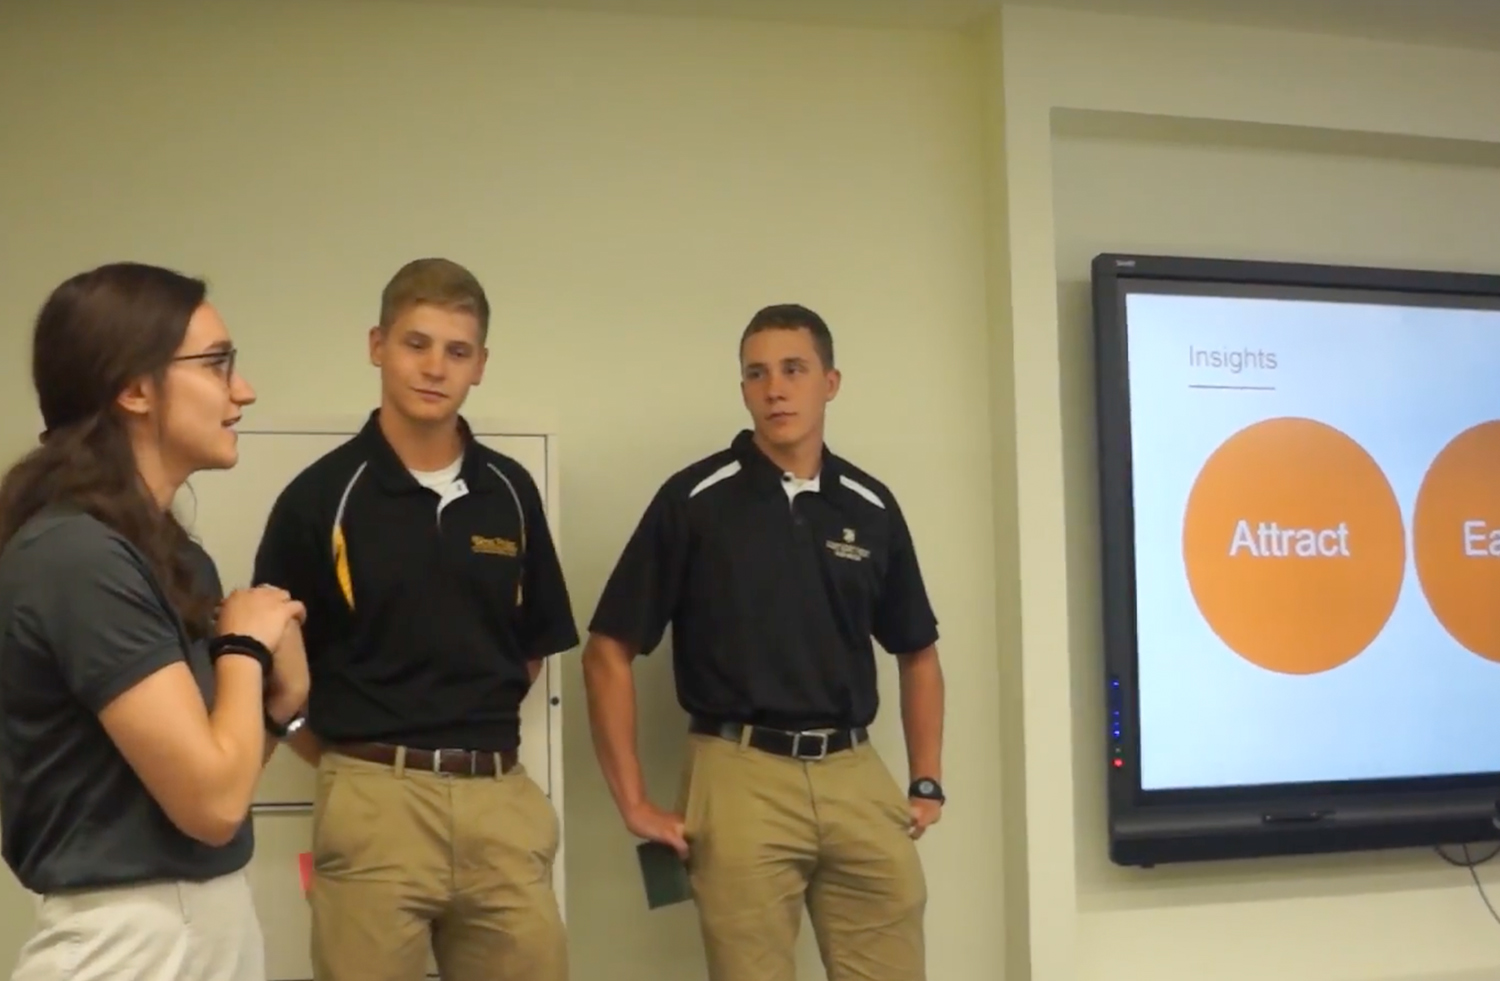 West Point cadets presenting their recommendations to DVS